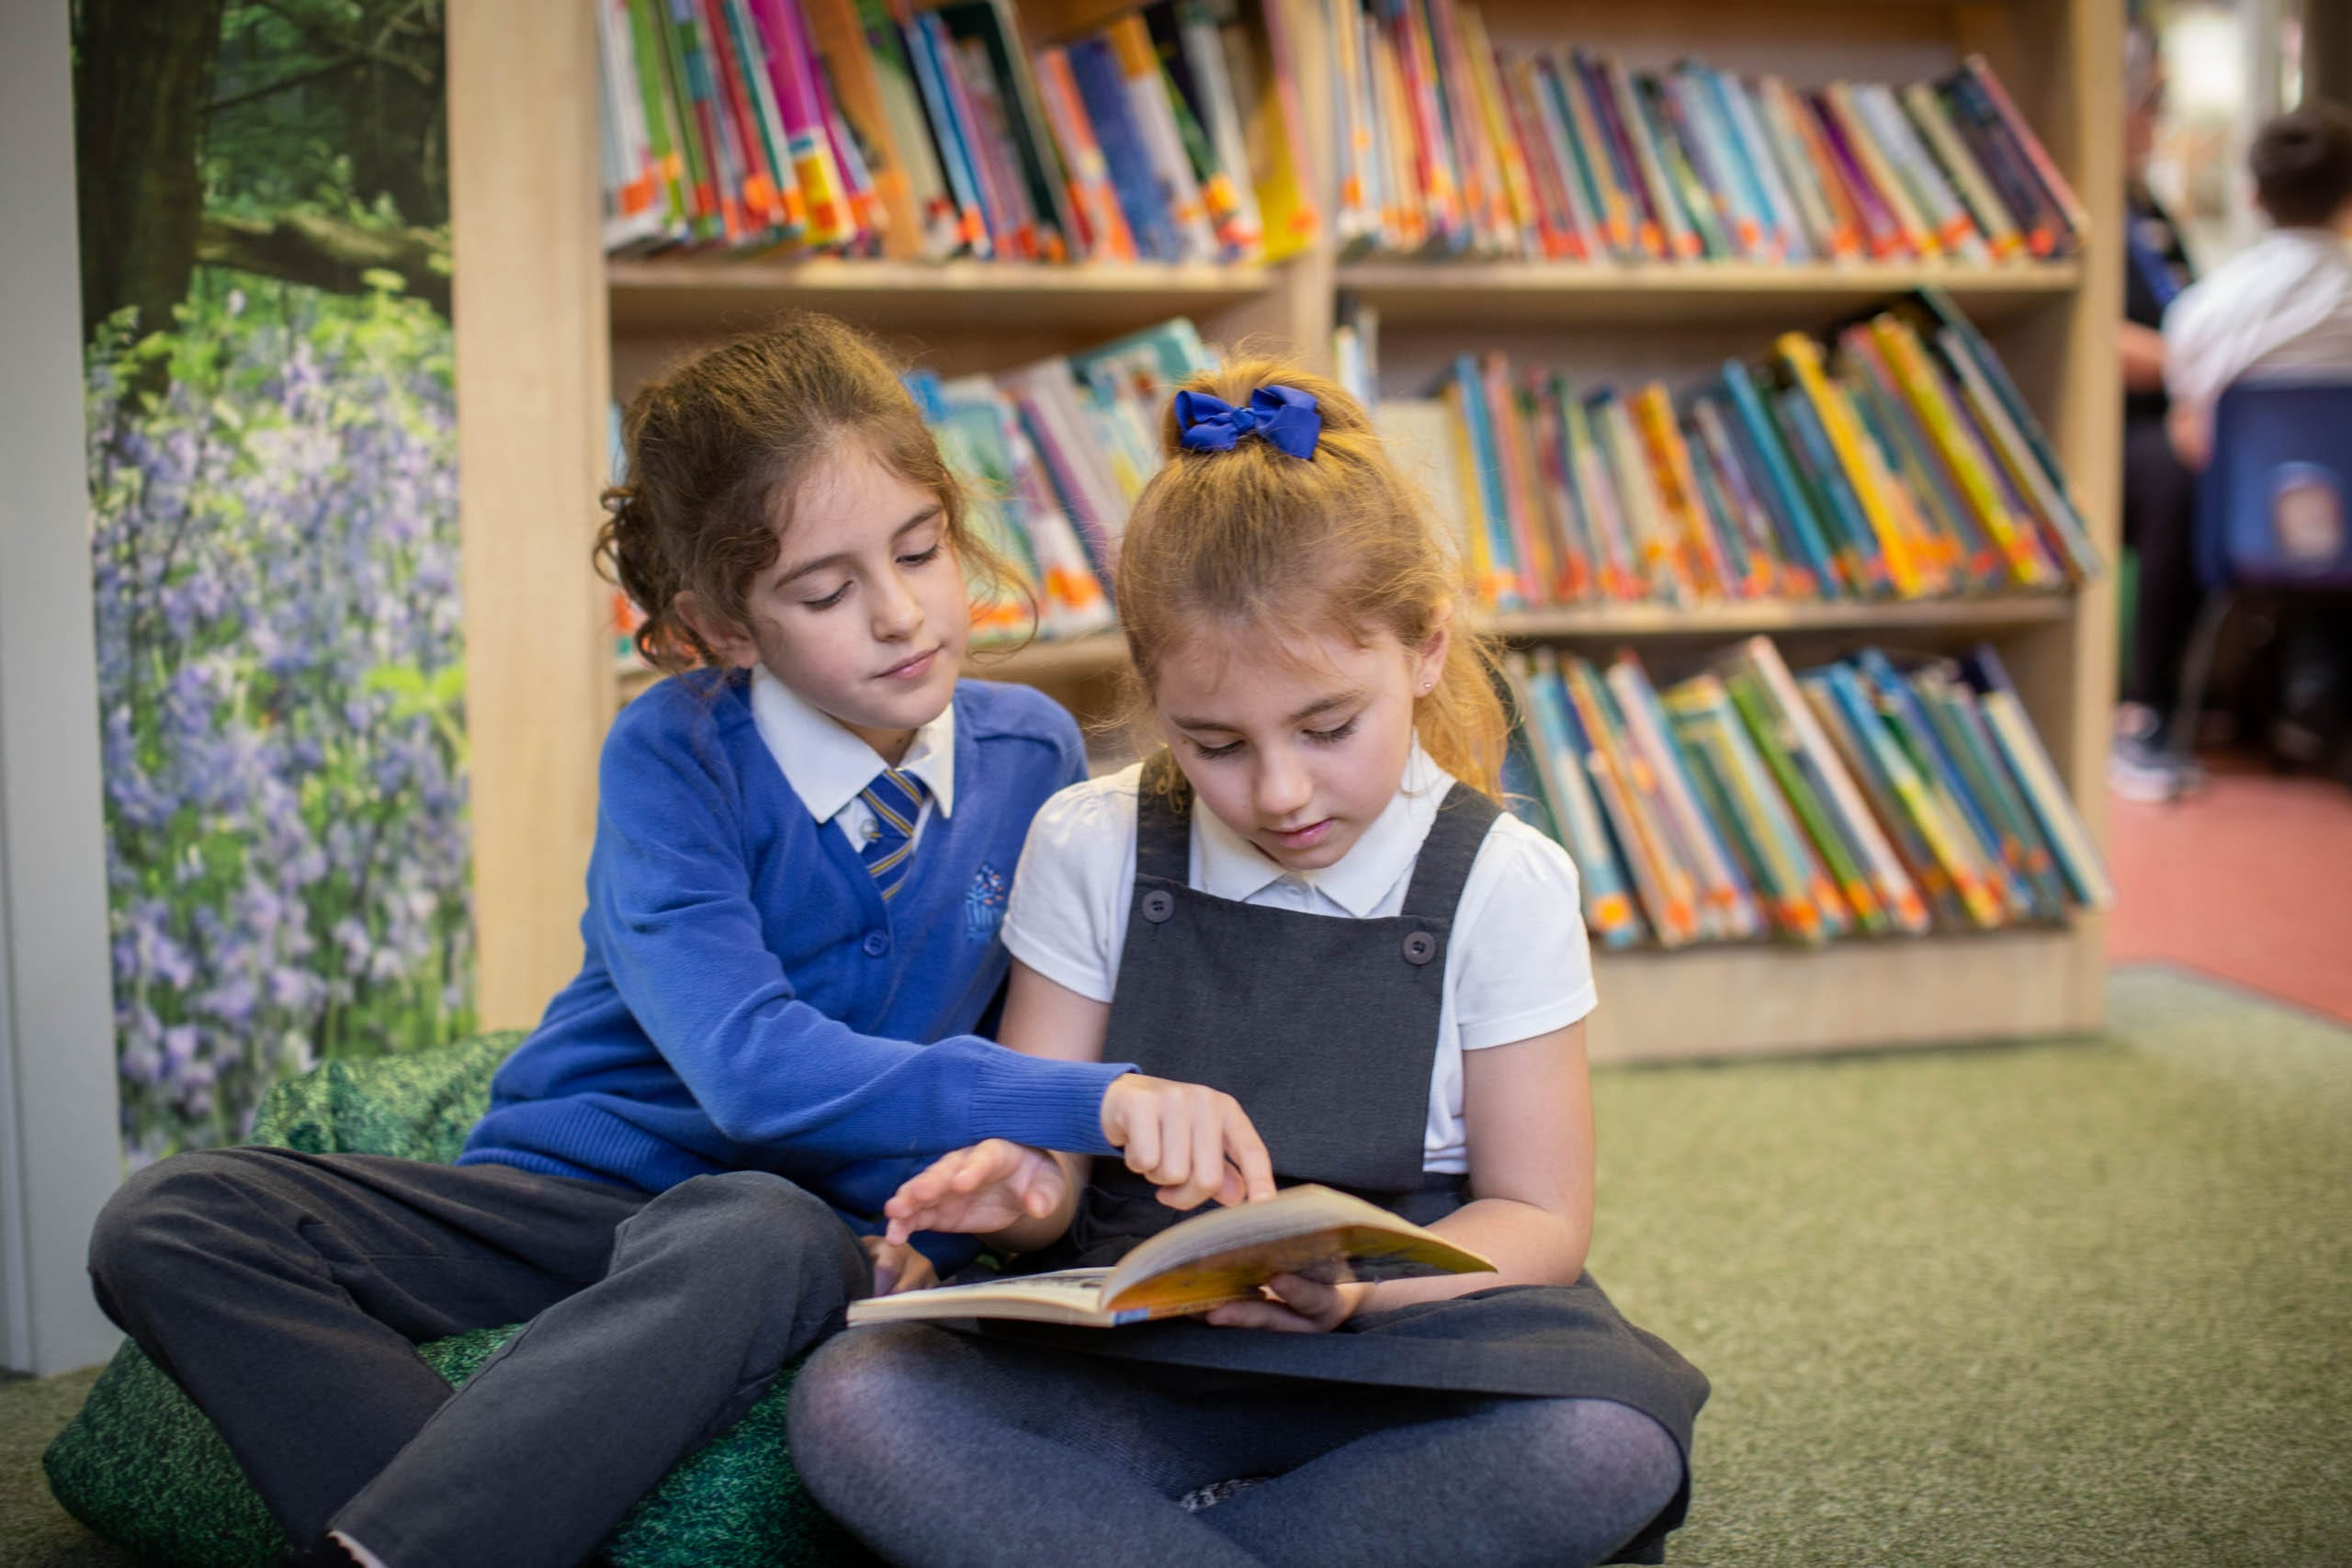 How to support your child's reading